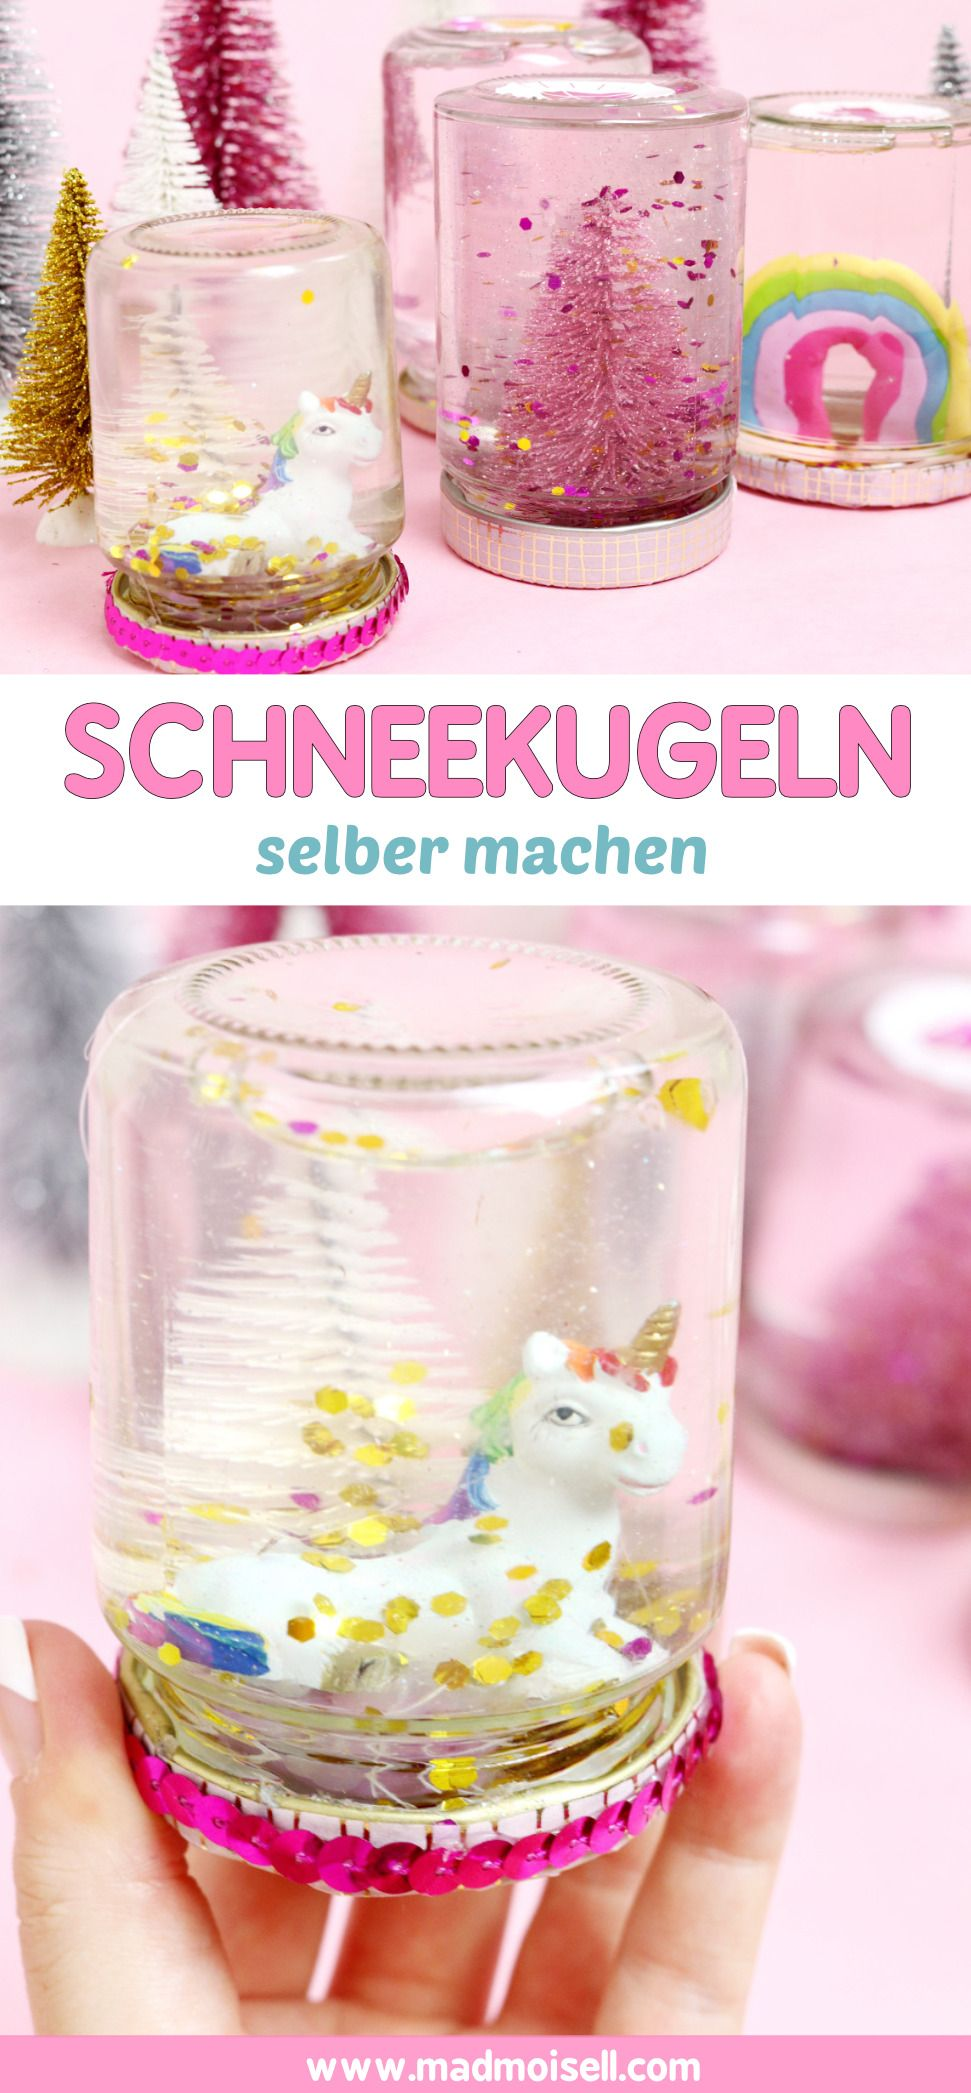 diy schneekugeln selber machen g nstiges geschenk f r weihnachten madmoisell diy projekte. Black Bedroom Furniture Sets. Home Design Ideas